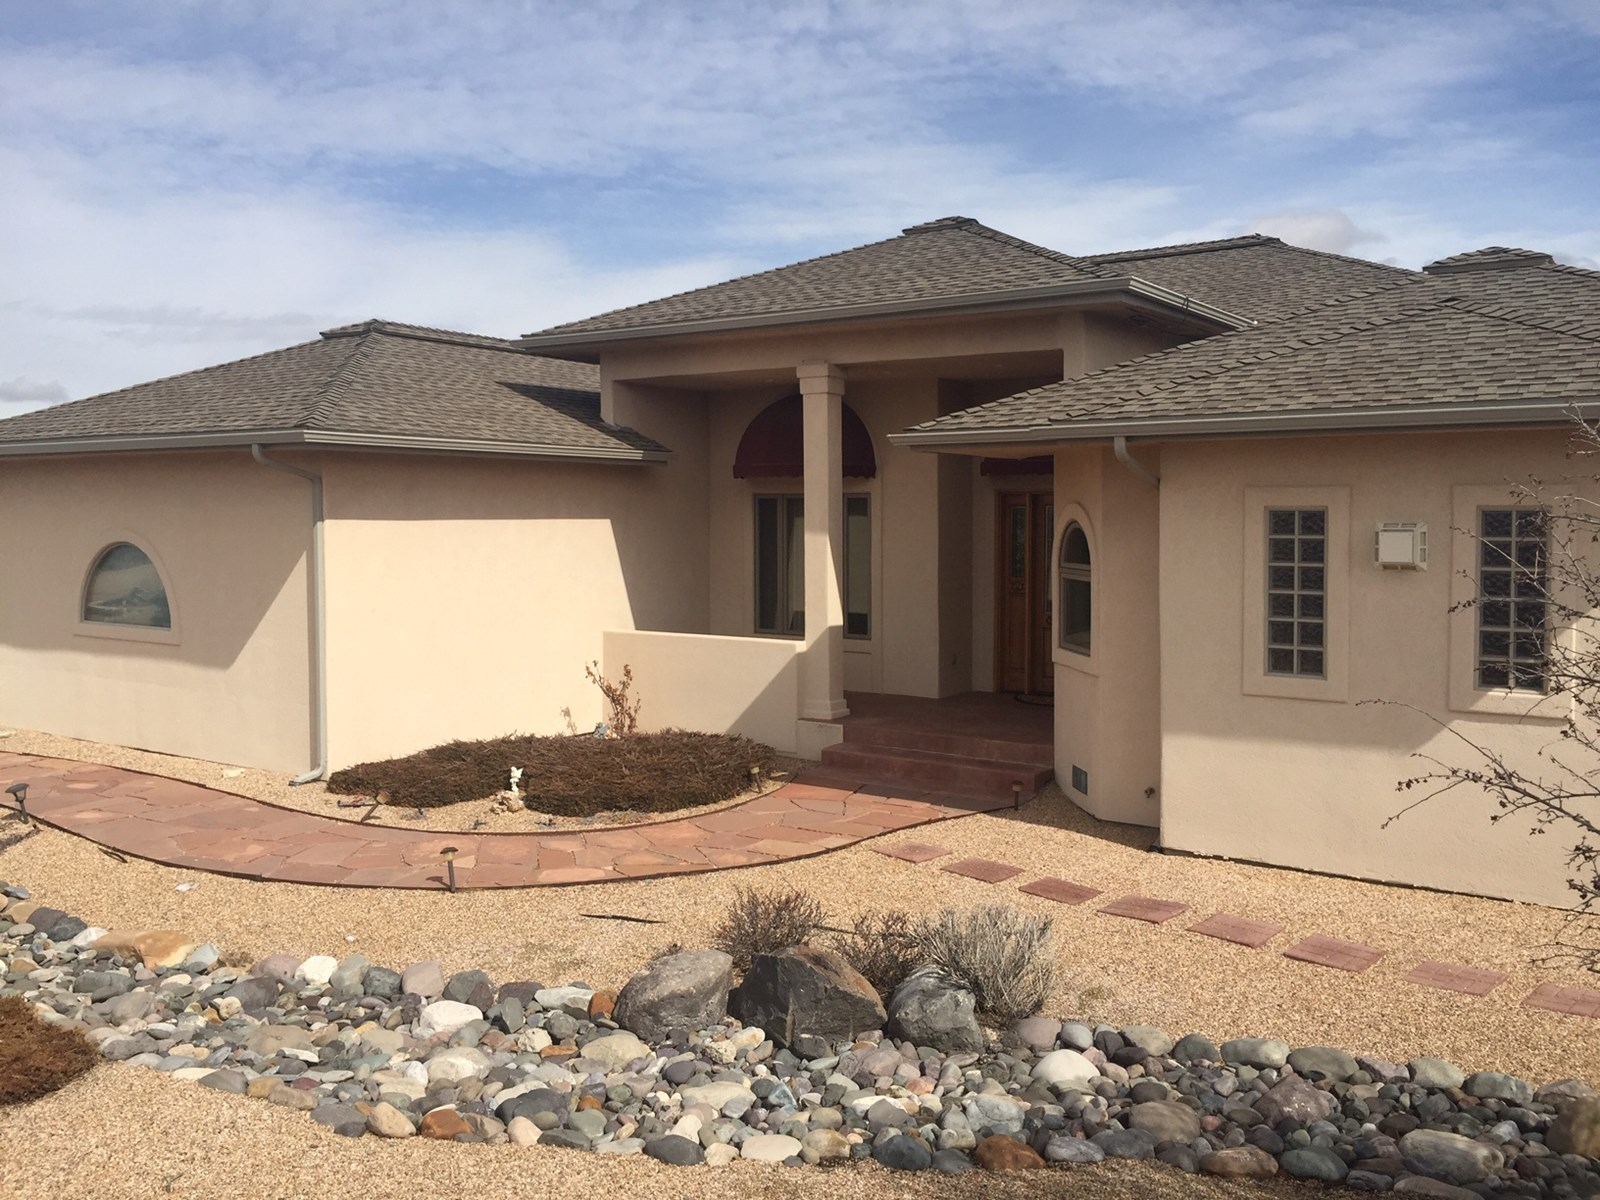 Horizons Subdivision Home For Sale Montrose, Colorado